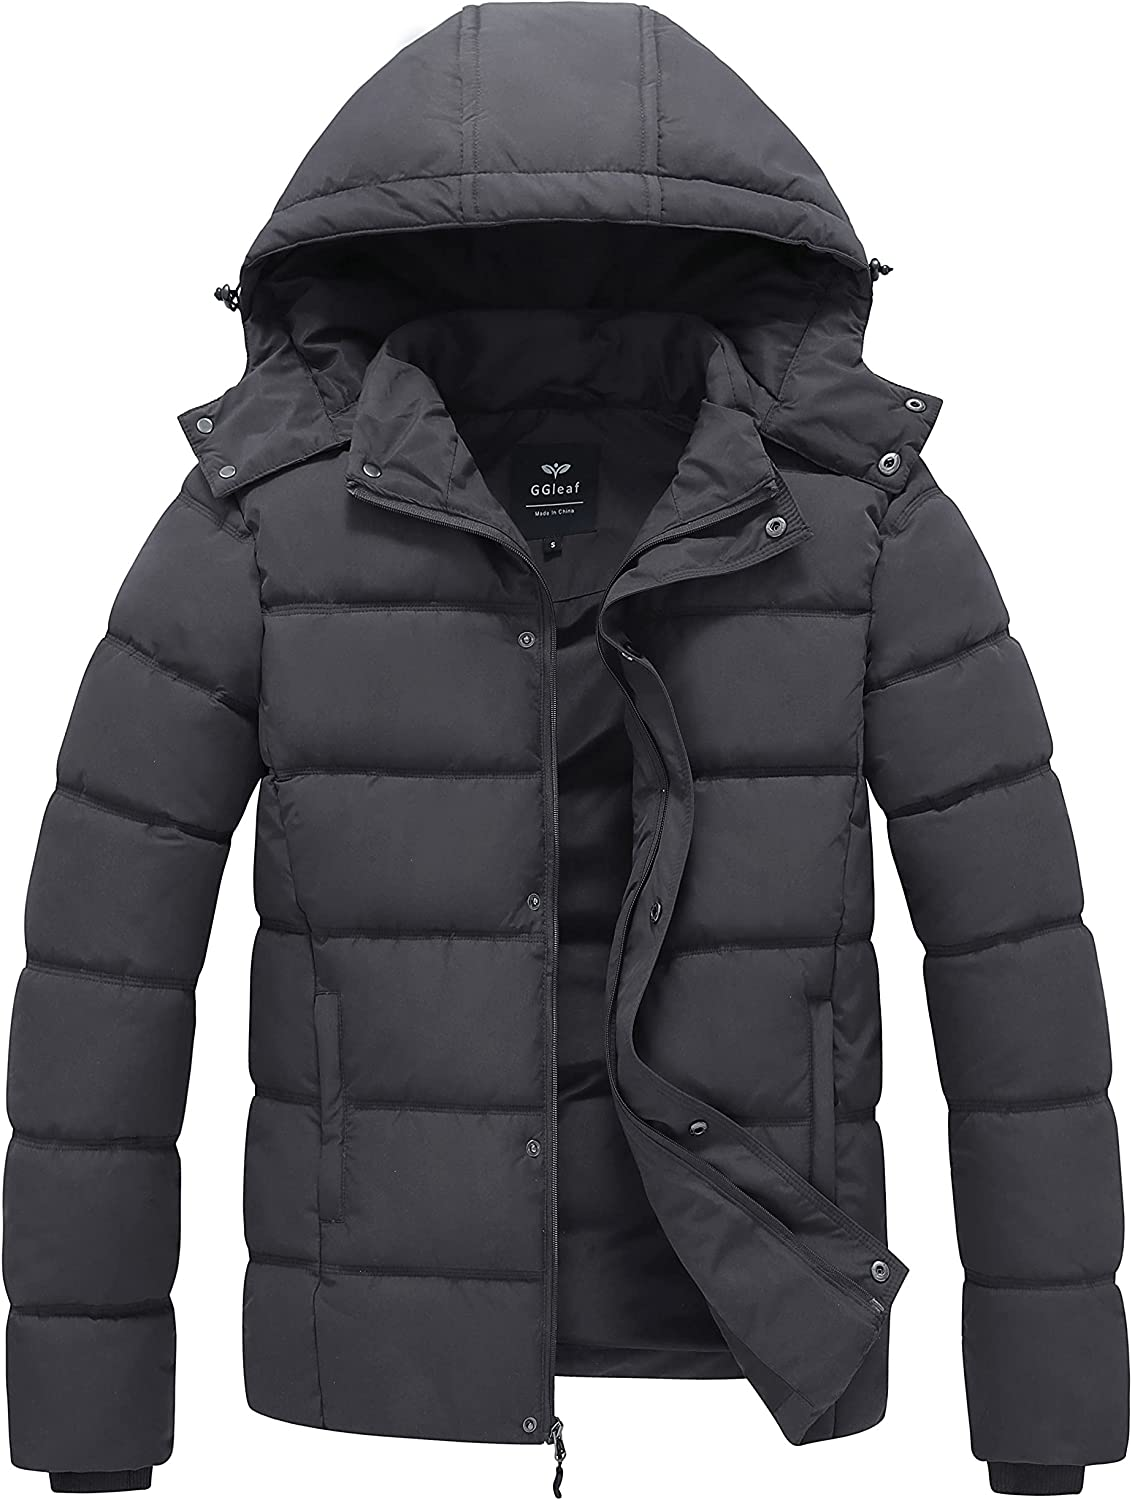 GGleaf Men's Hooded Winter Coat Warm Puffer Jacket Thicken Cotton Coat with Removable Hood